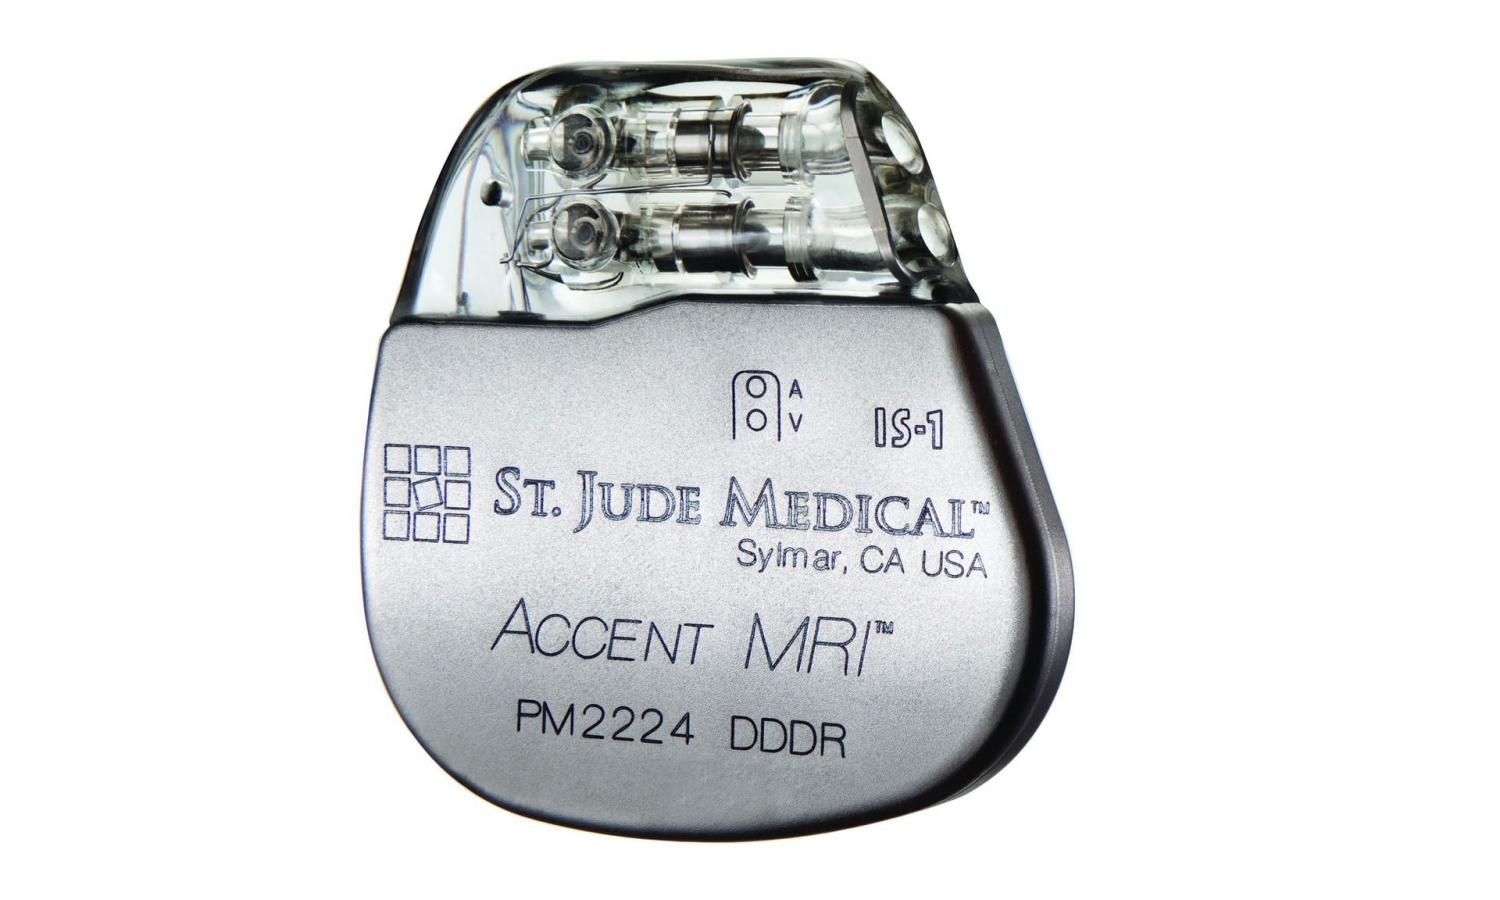 Pacemakers able to be hacked, shut off